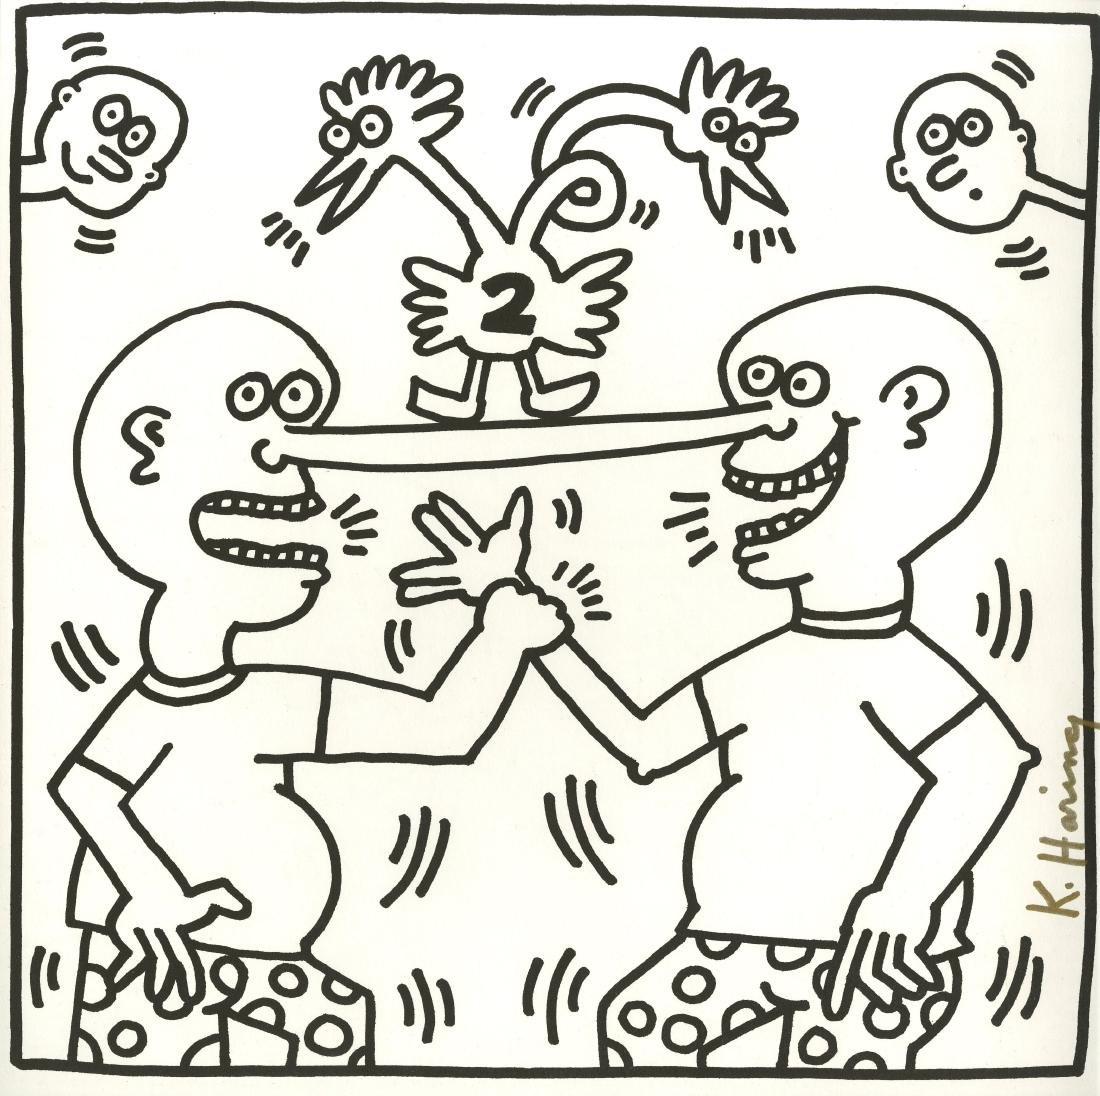 1308: KEITH HARING - Two Heads